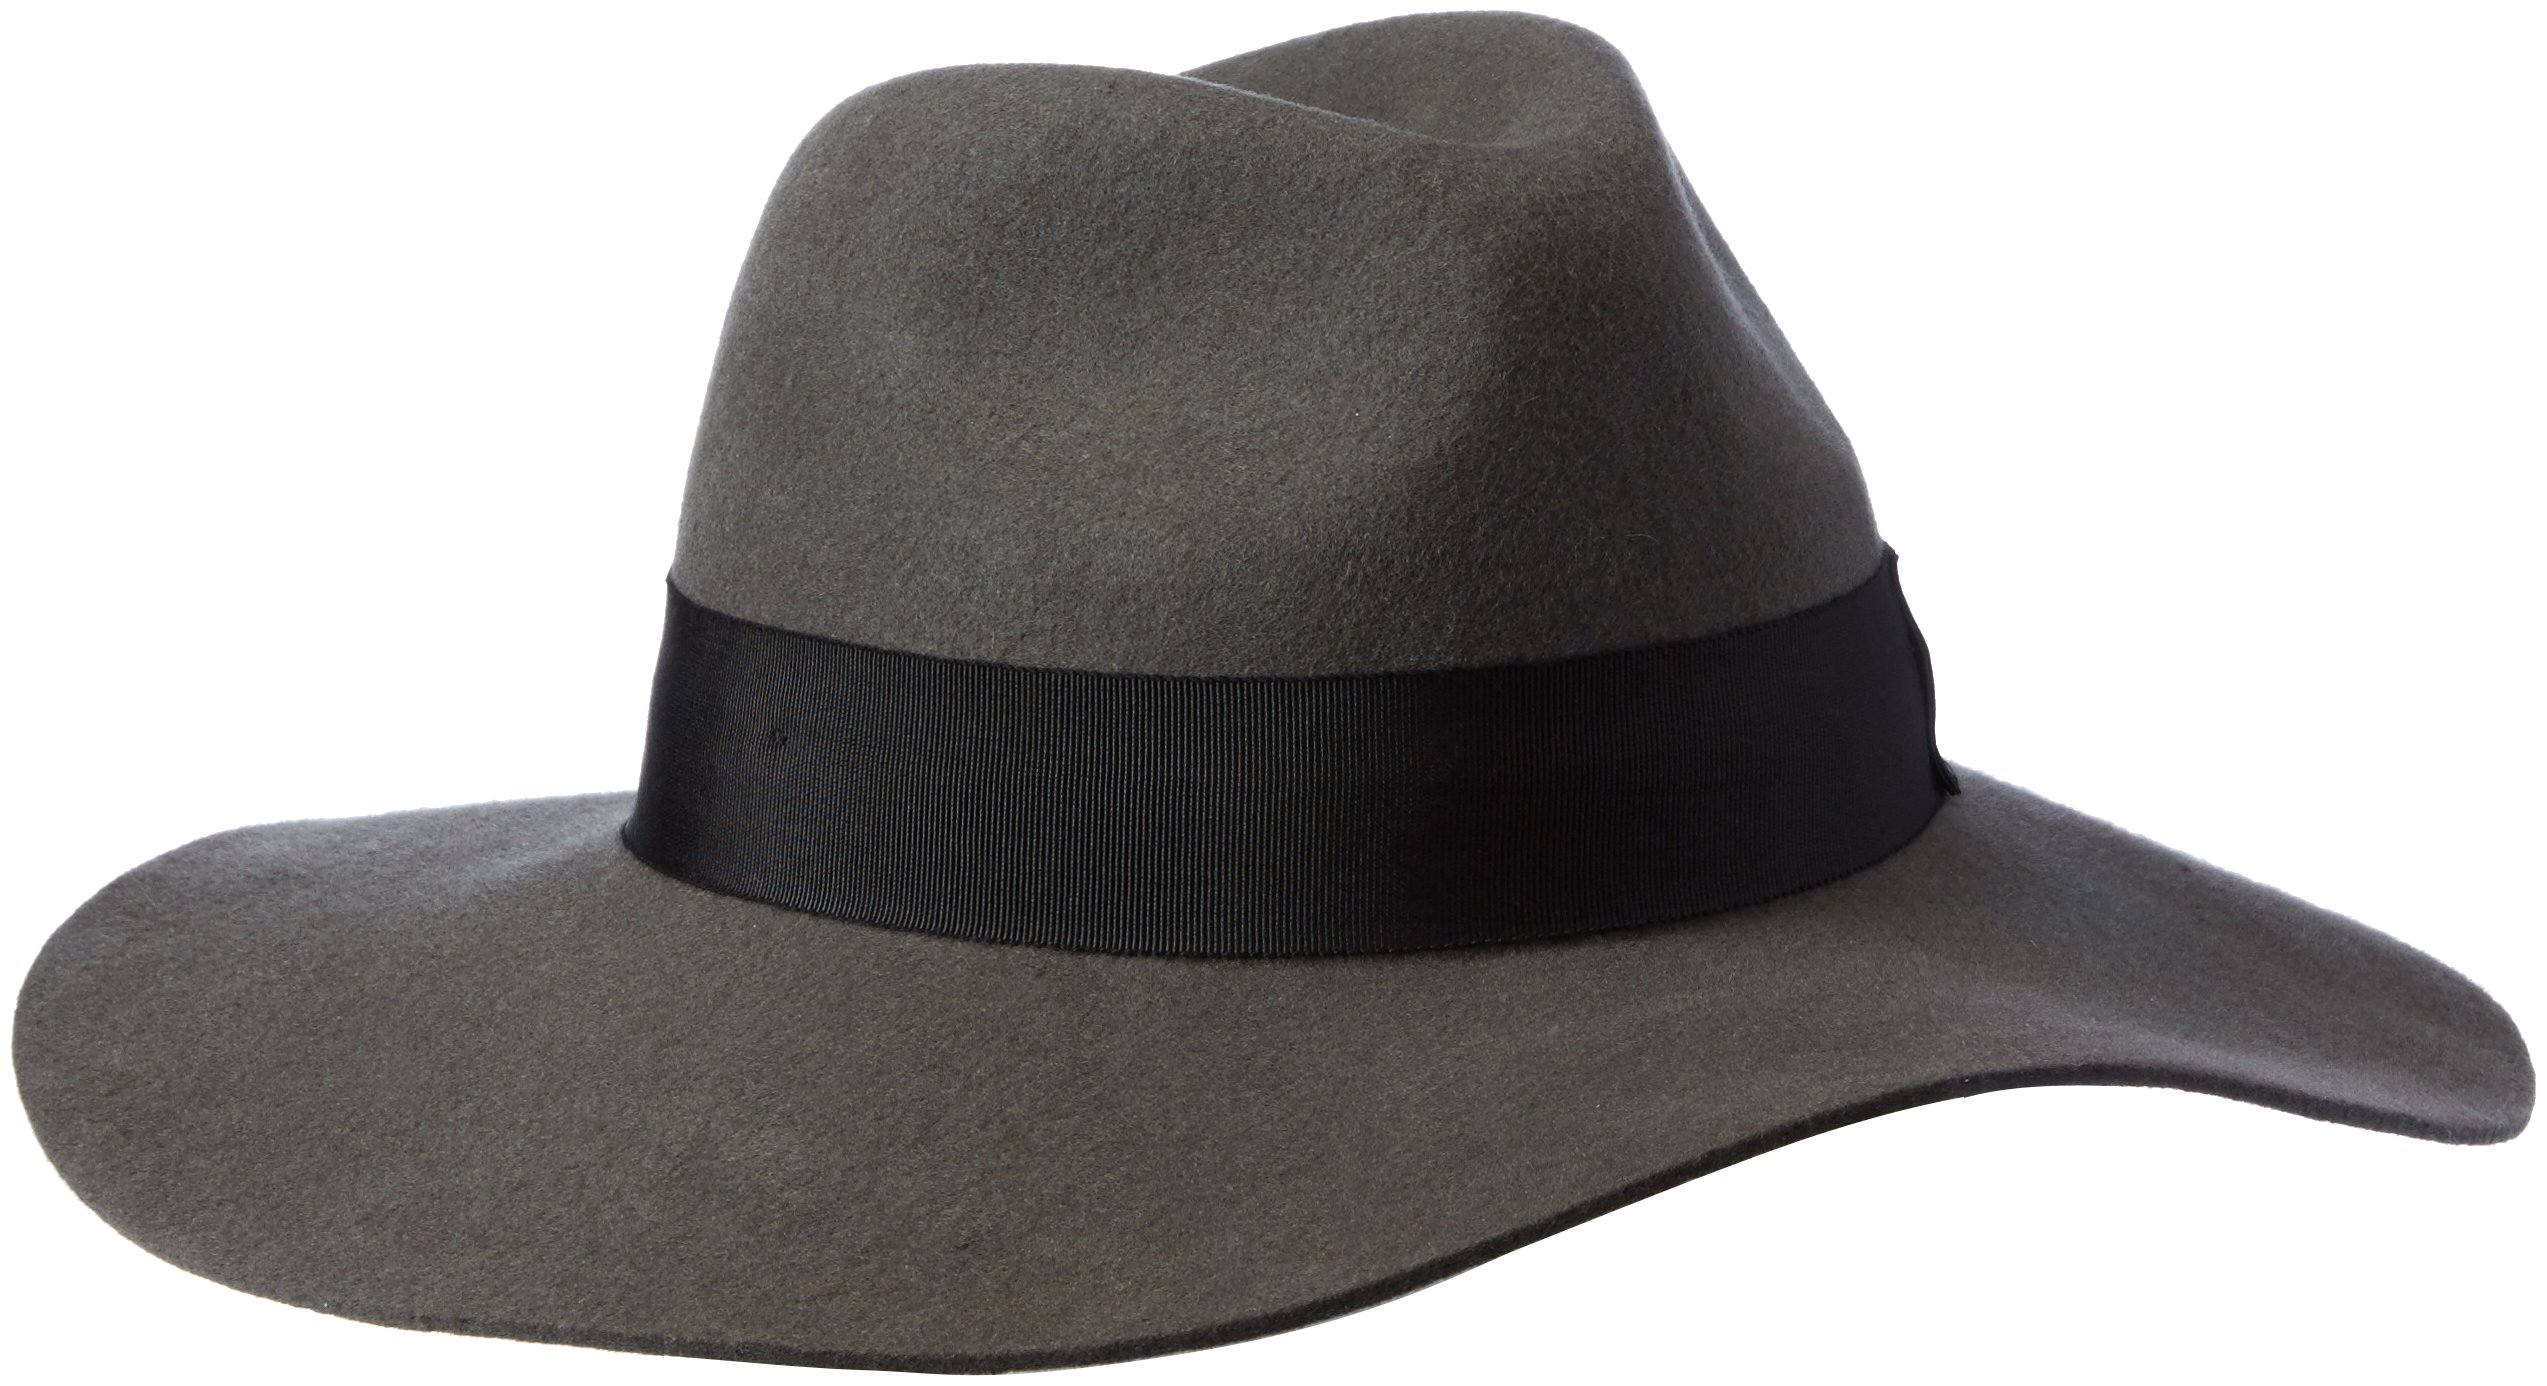 Gottex Women's Laurent Felt Fedora Sun Hat, Rated UPF 50+ for Max Sun Protection, Grey/Black, One Size